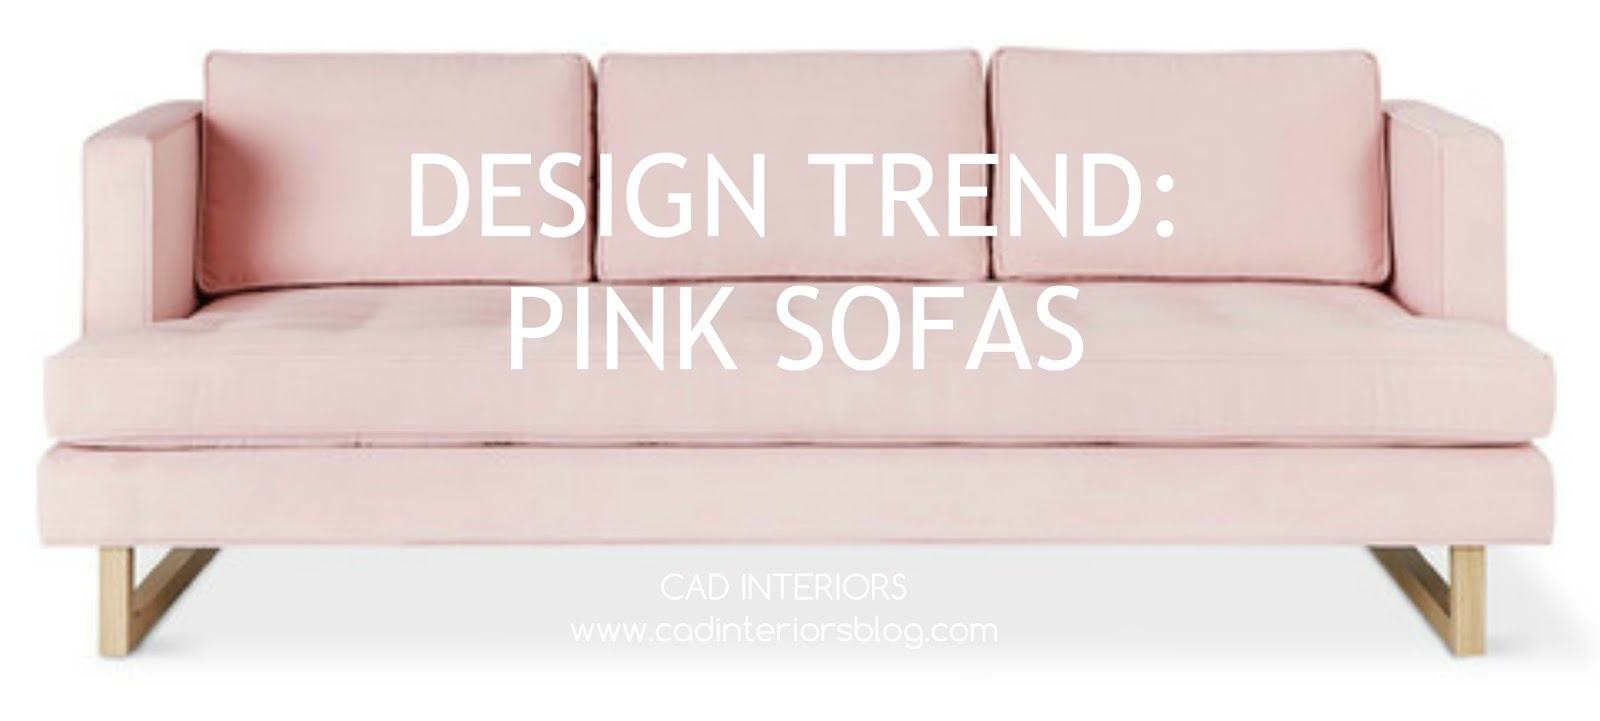 interior design decorating trend inspiration blush pink furniture home decor accents